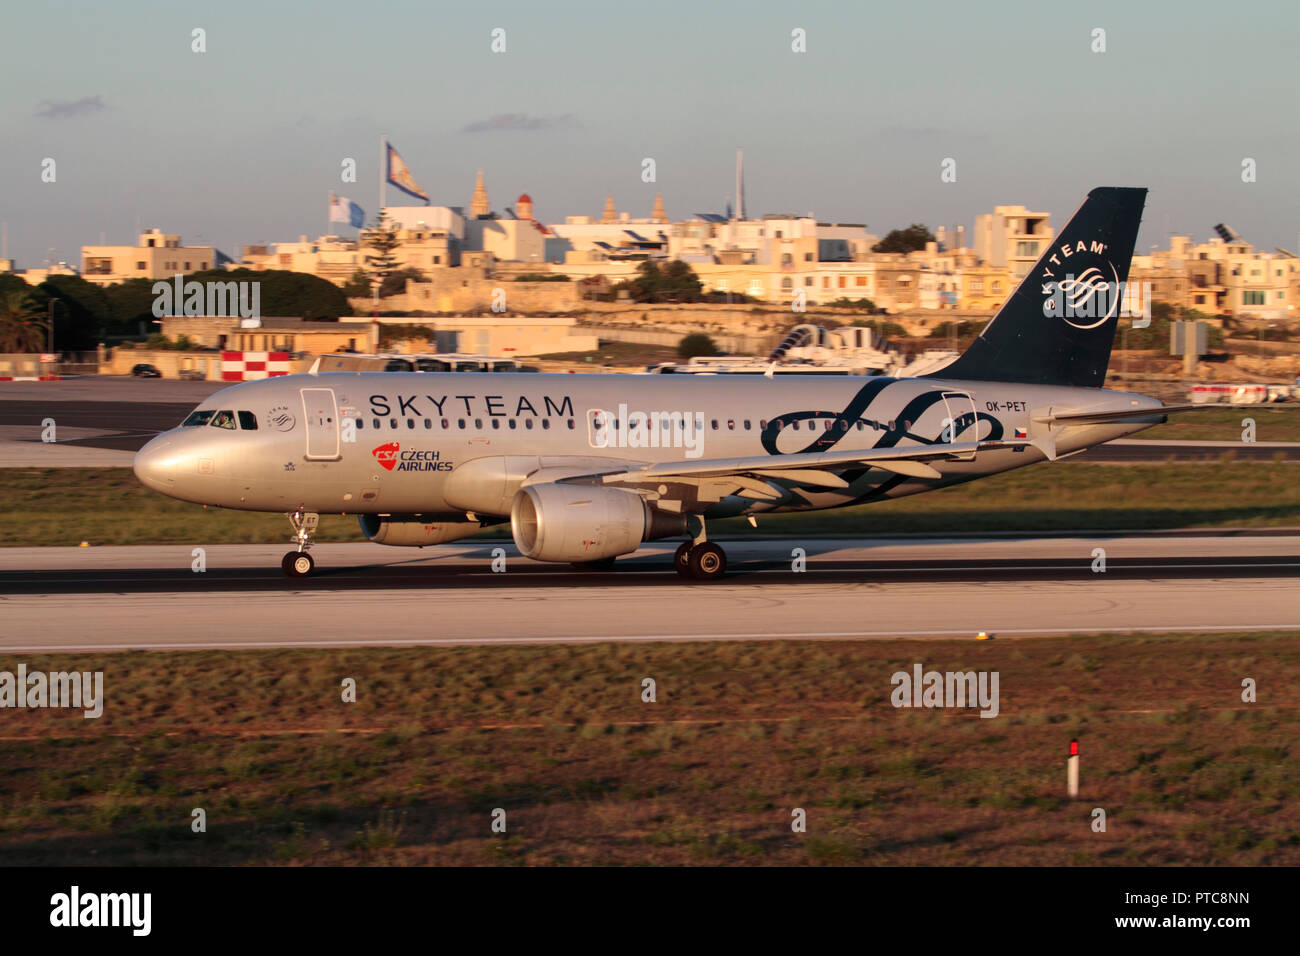 CSA Czech Airlines Airbus A319 passenger jet plane in the colours of the Skyteam airline alliance taking off from Malta at sunset. Intra-EU flights. - Stock Image